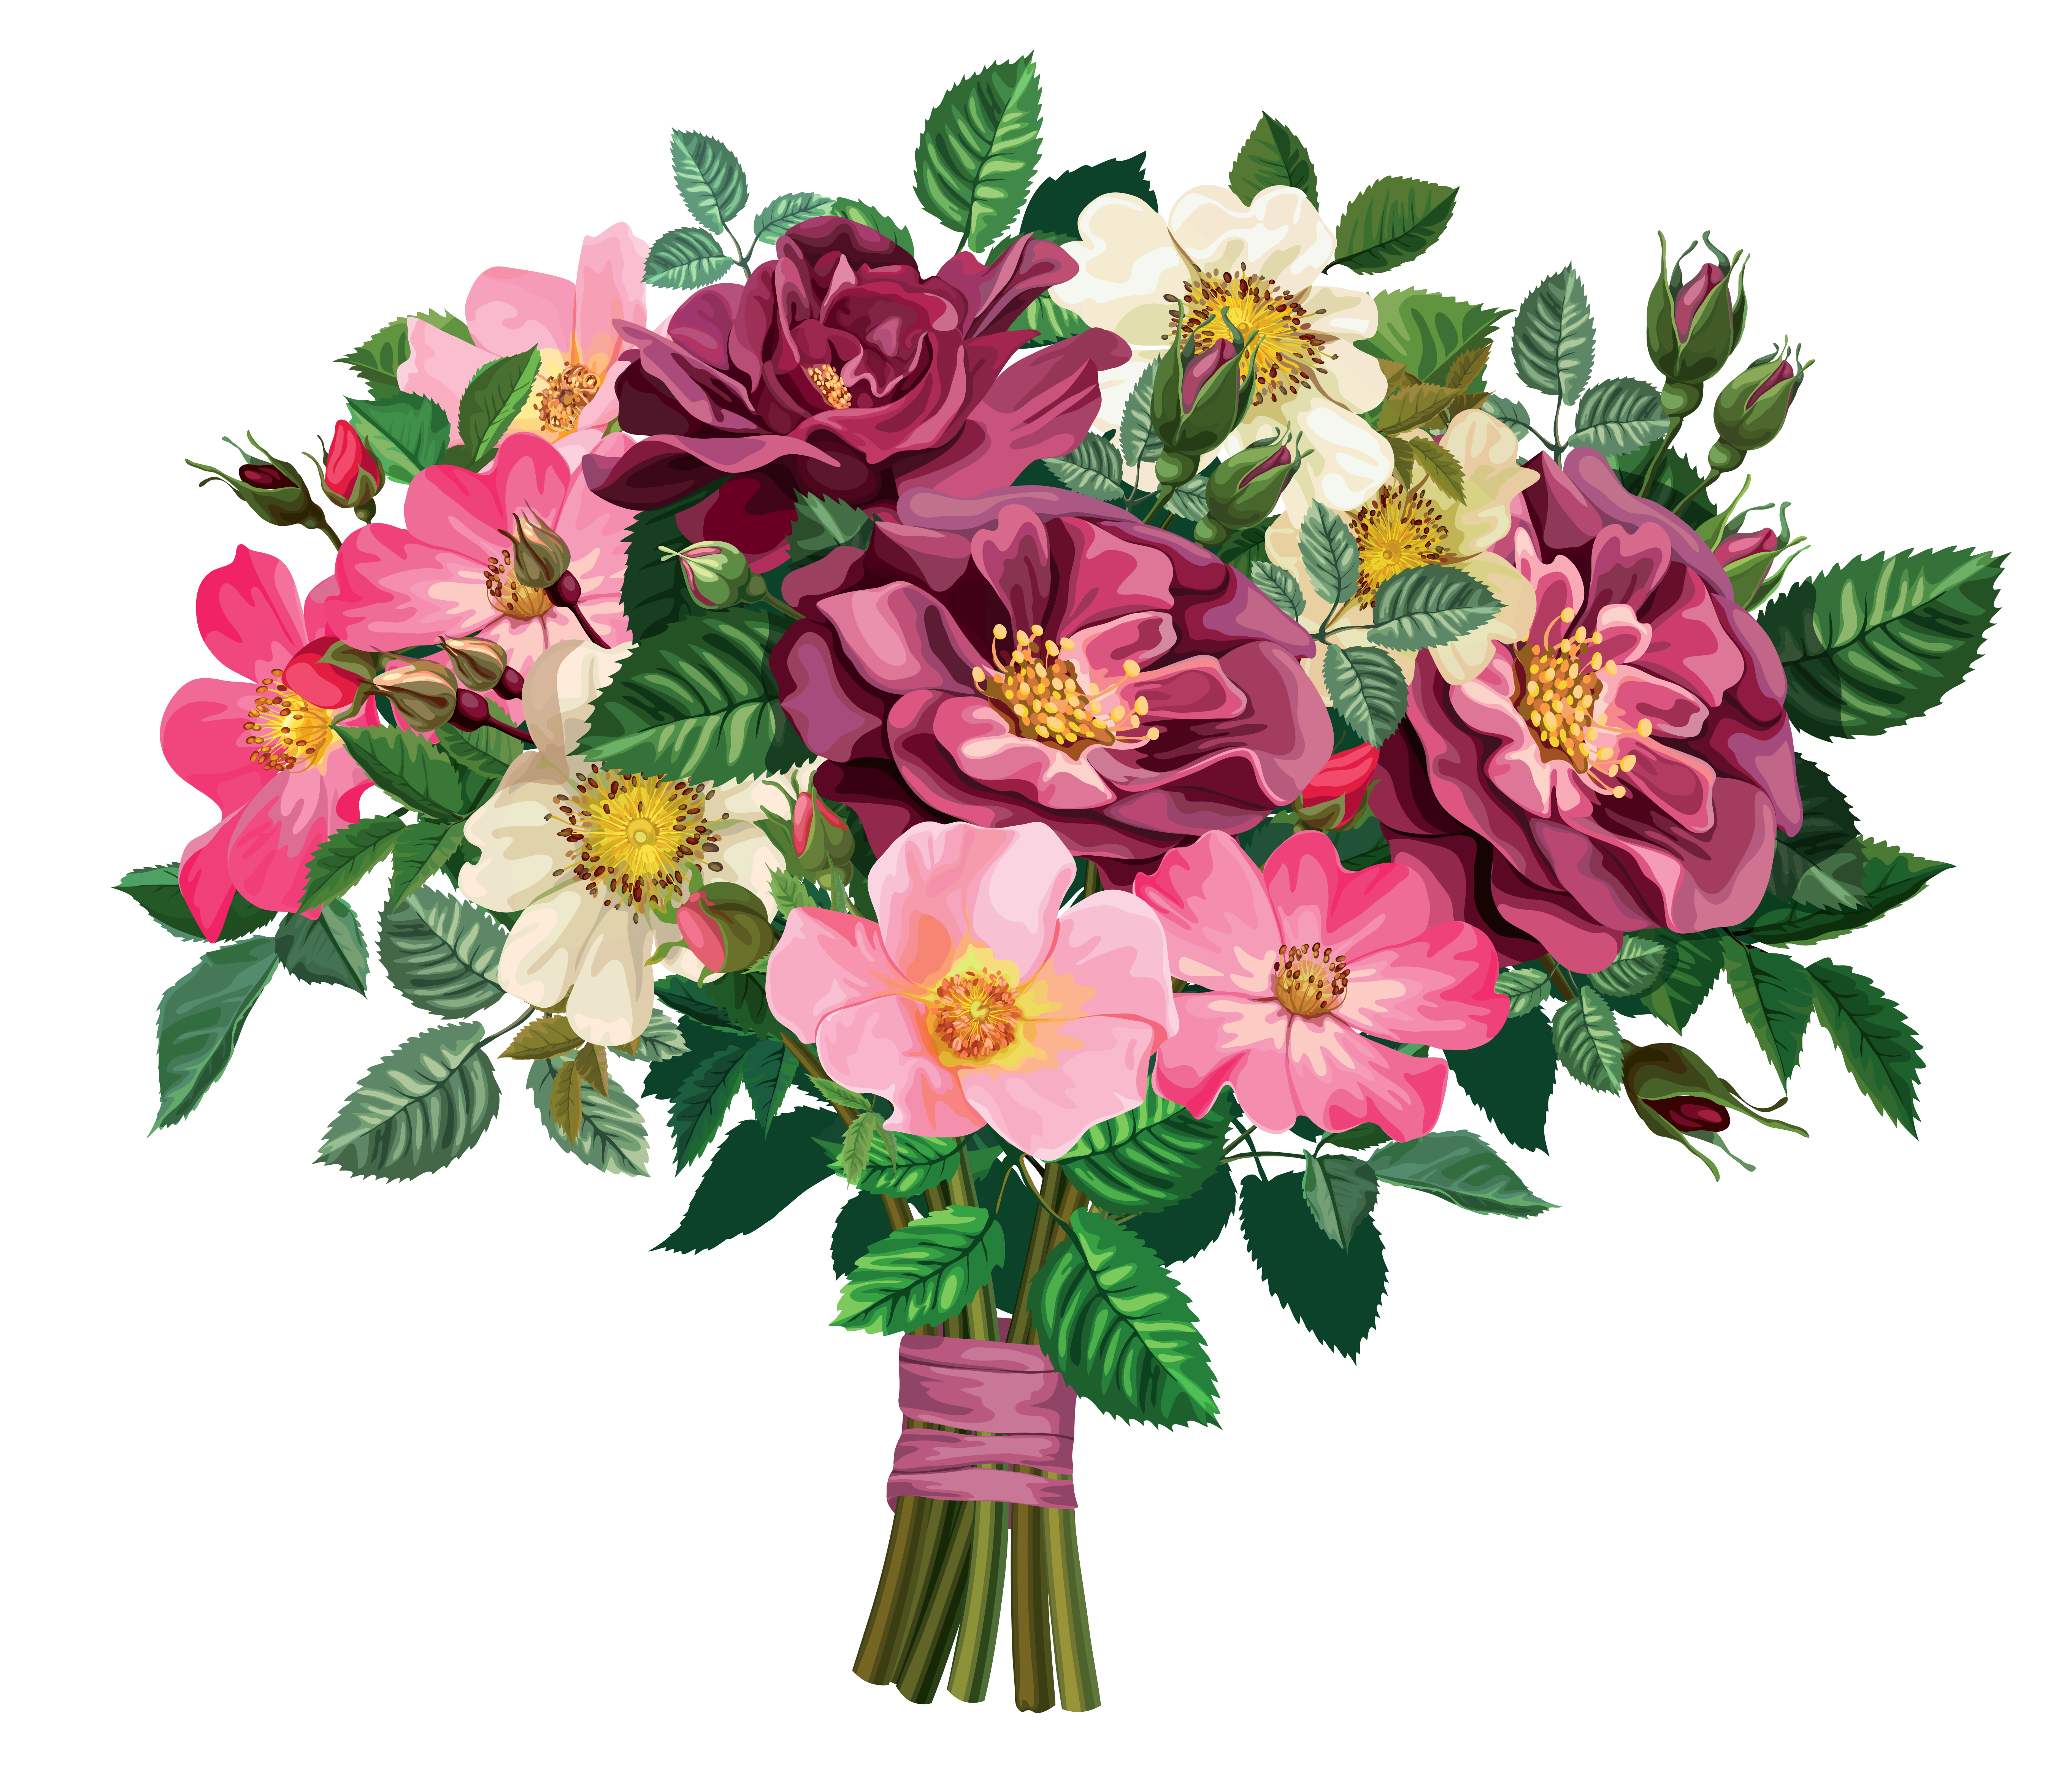 Flower bunch clipart.